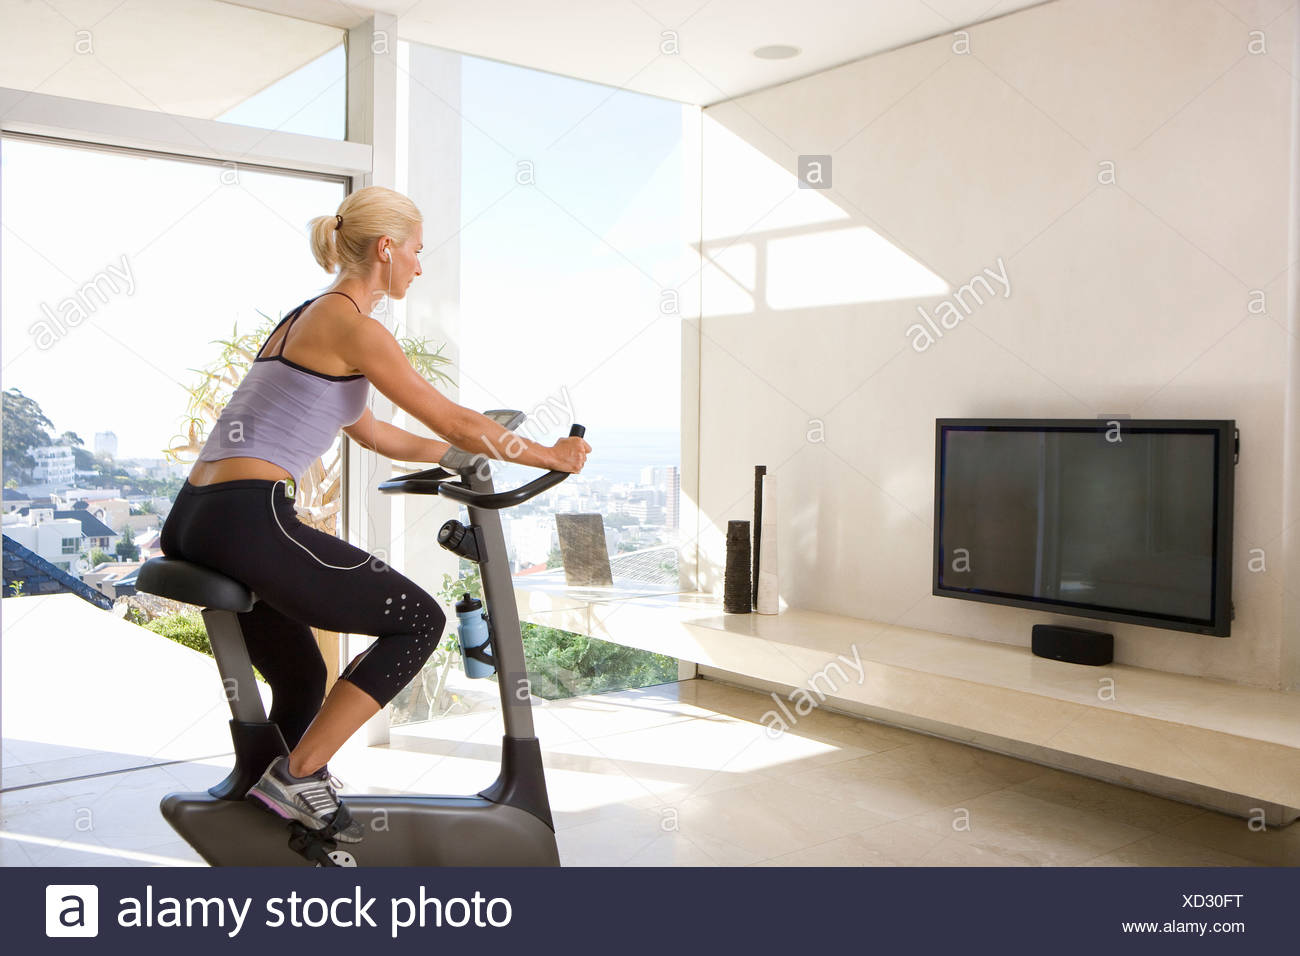 Mature woman riding stationary bicycle in living room, side view ...